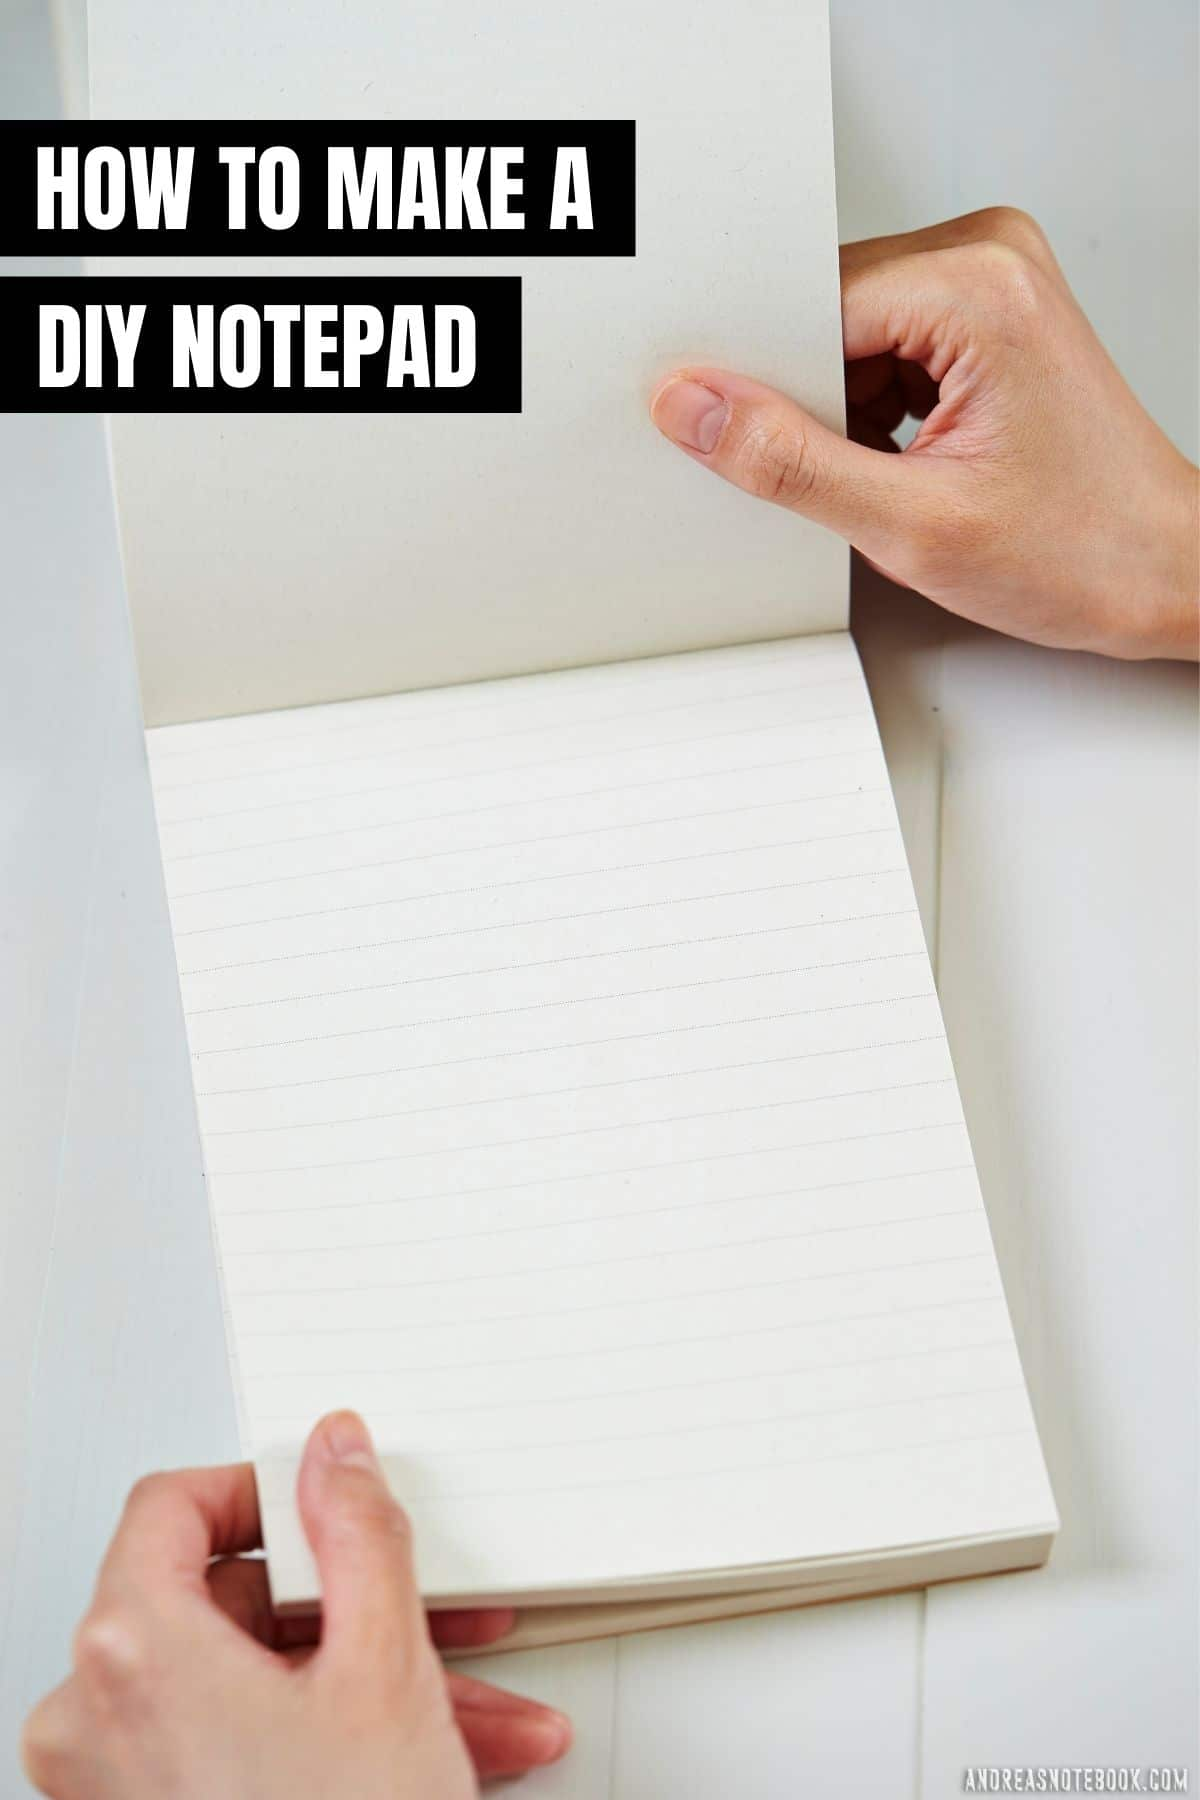 text: how to make a diy notepad - image: white table, lined notepad open on top with two hands holding notepad open. Padding compound glue for binding notepads is at top of the notepad.